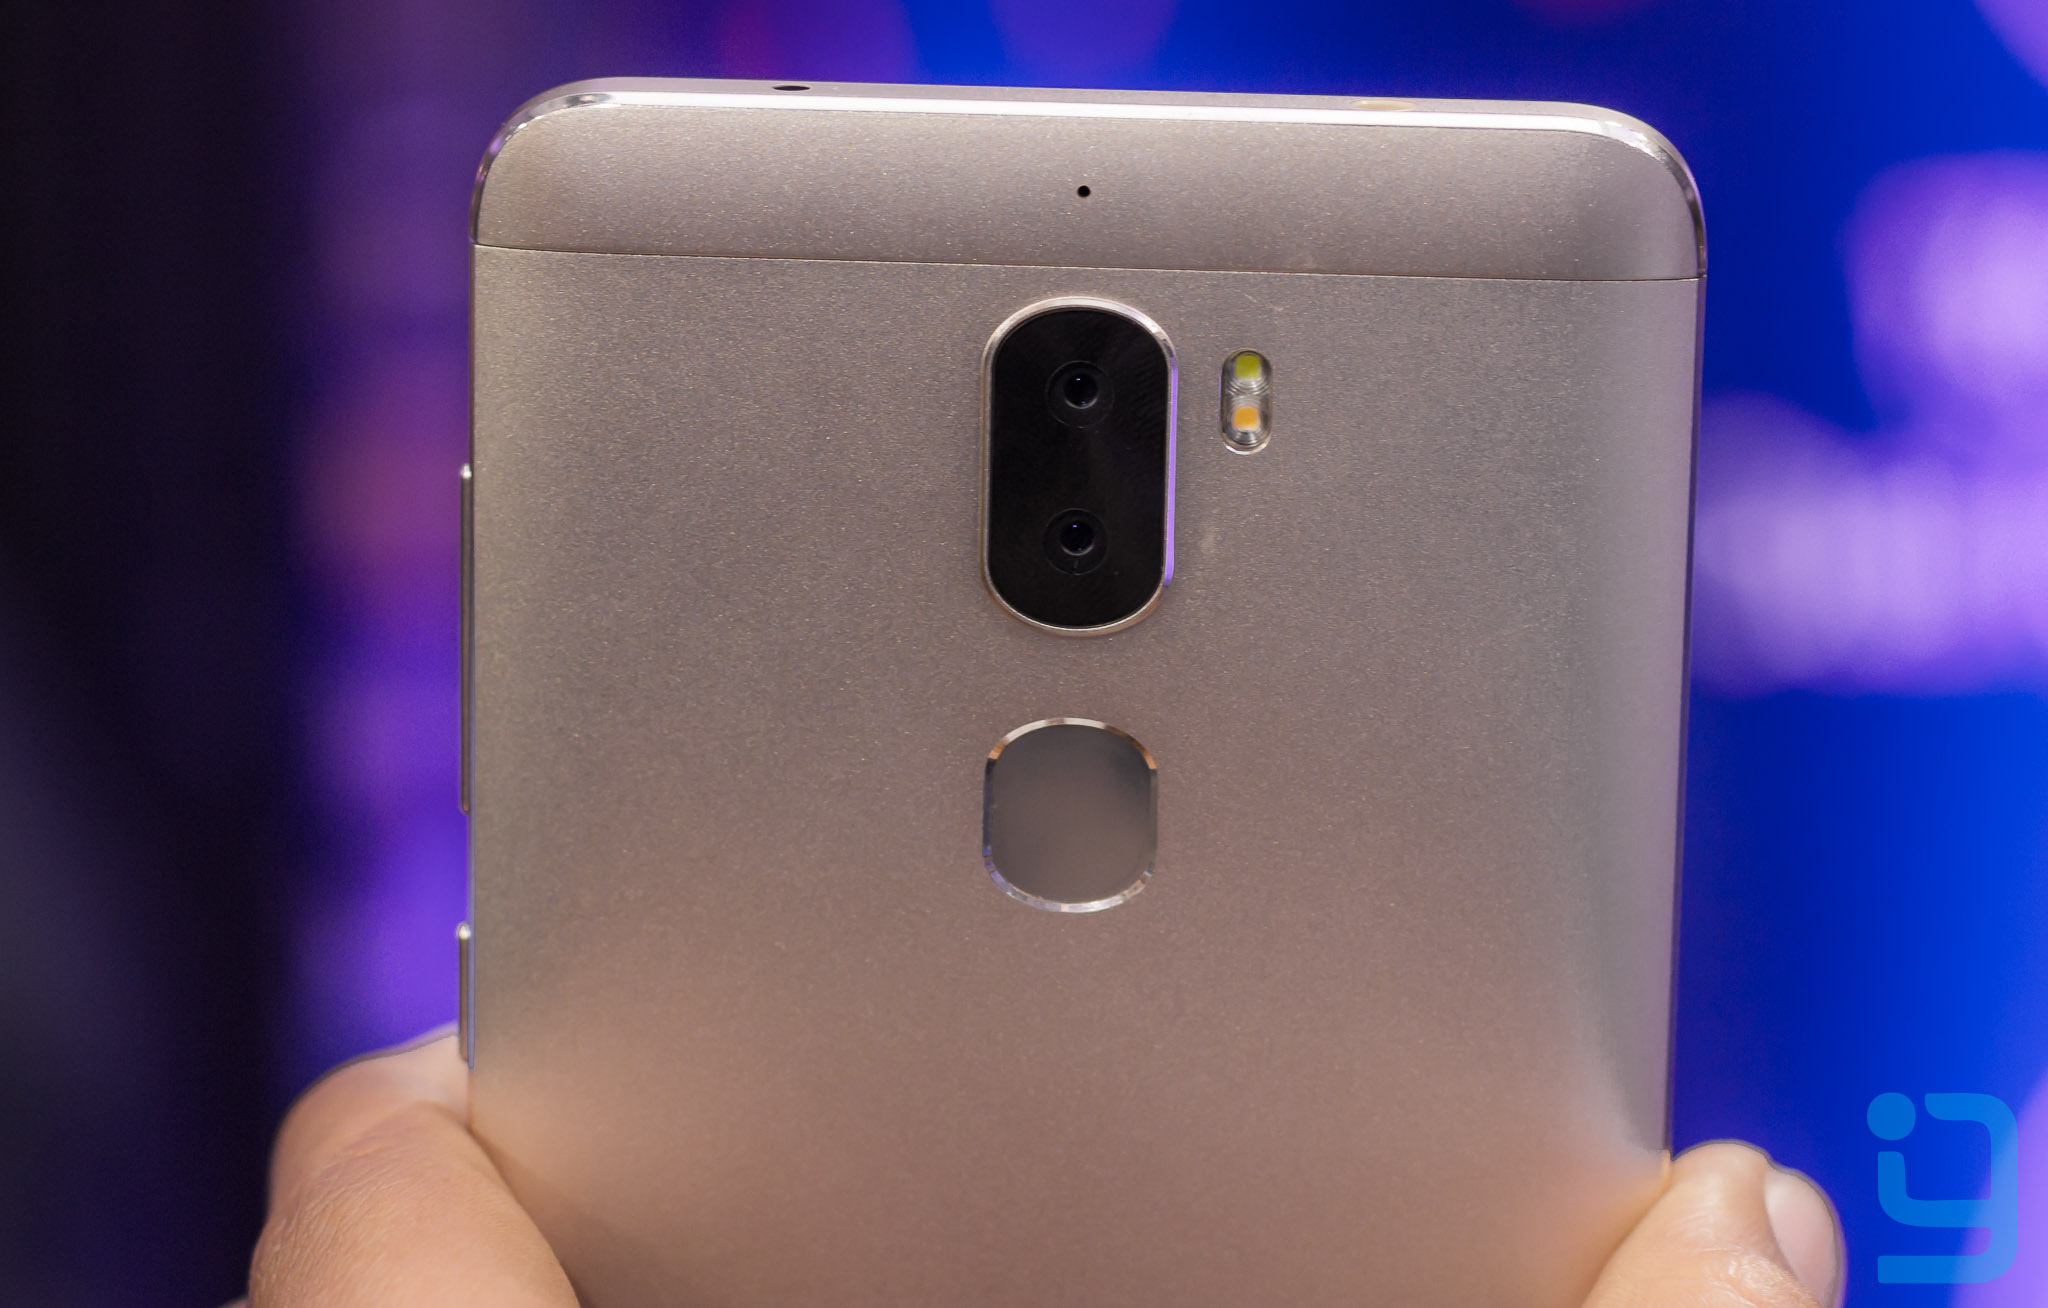 The first 13MP sensor on the Cool 1 handles color while the second 13MP sensor takes care of depth detail and brightness